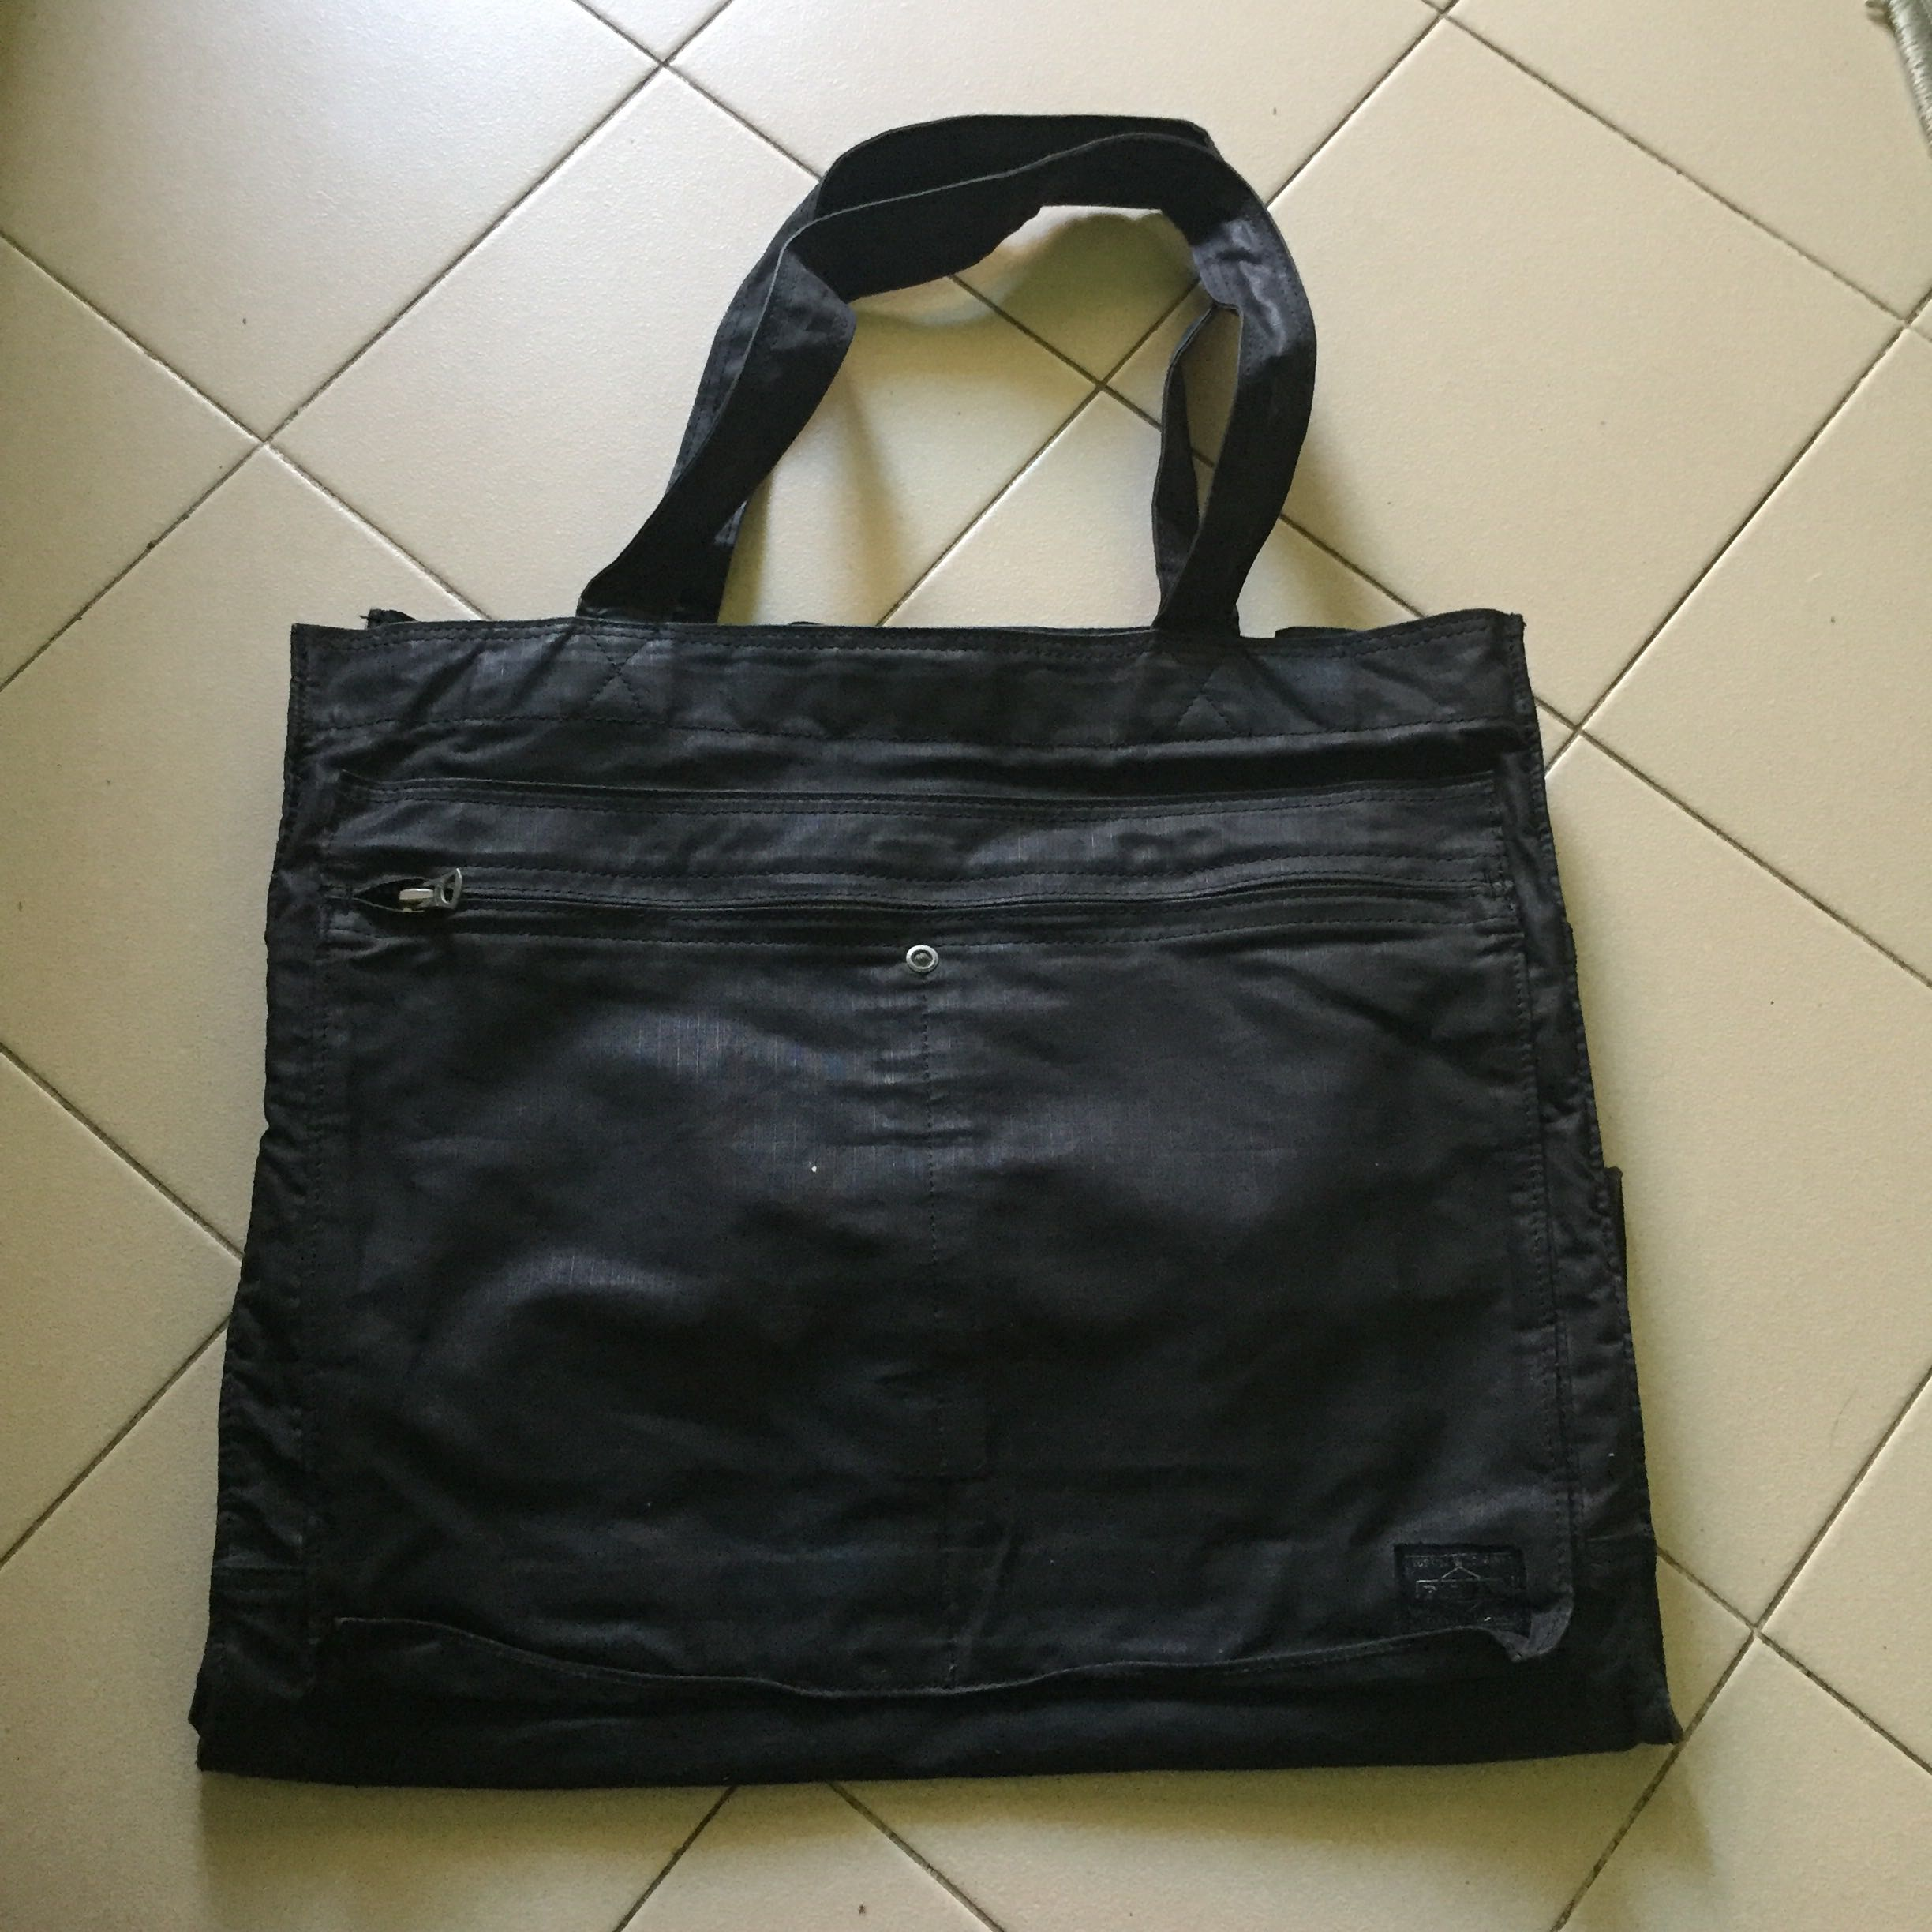 ... Yoshida Porter PORTER backpack daypack HEAT heat 703-06302  online  store a5179 d7189 Home · Mens Fashion · Bags Wallets. photo photo . ... 15a7dfae56966